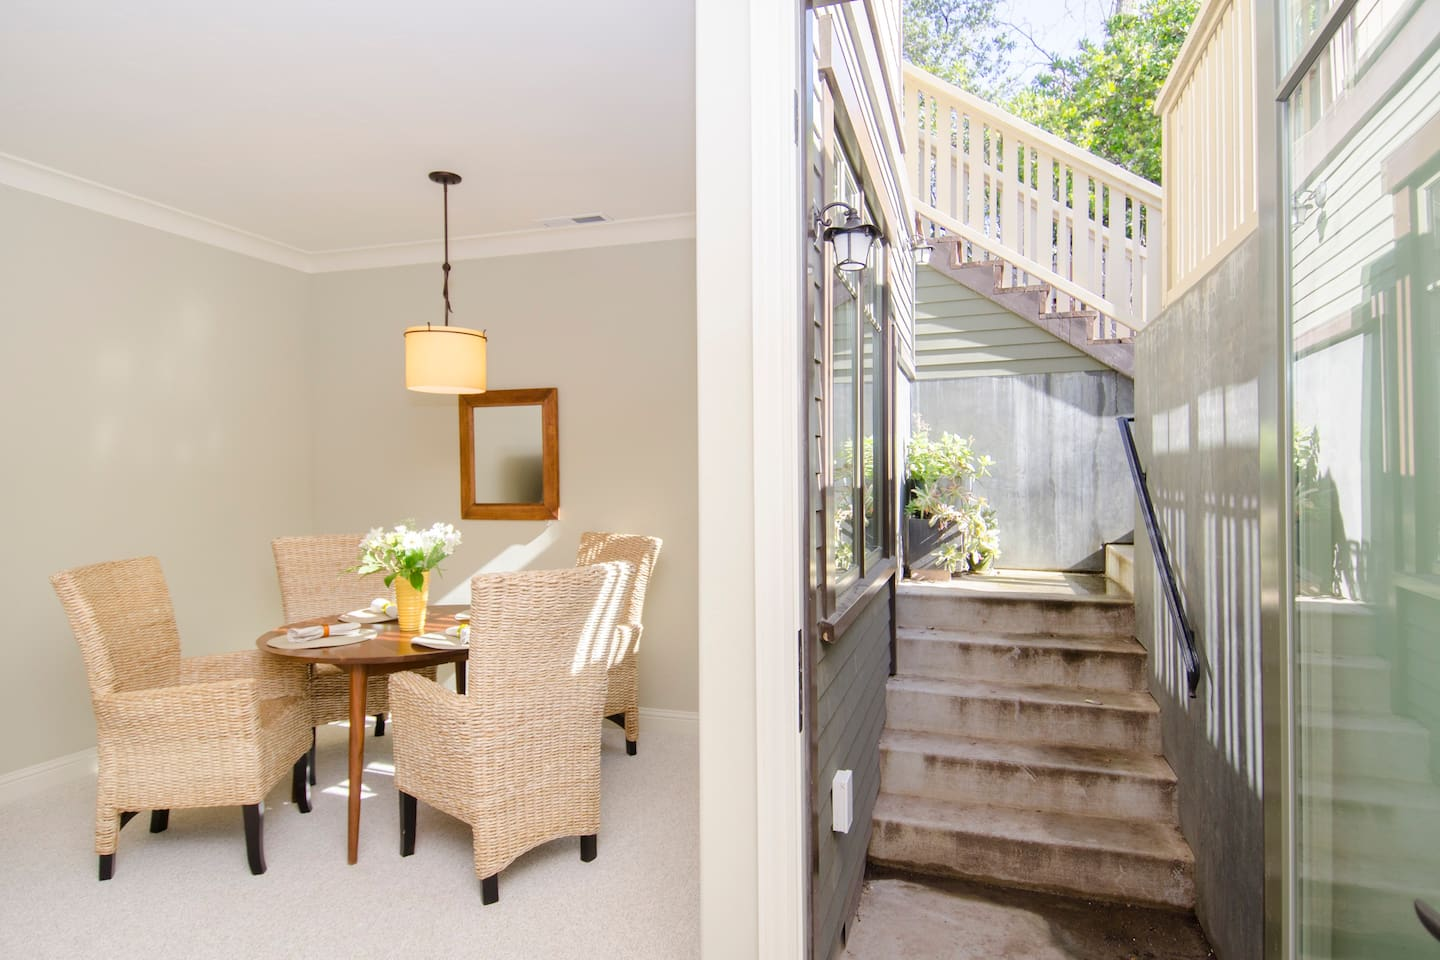 Light and bright basement. Dining Room and private entrance shown.